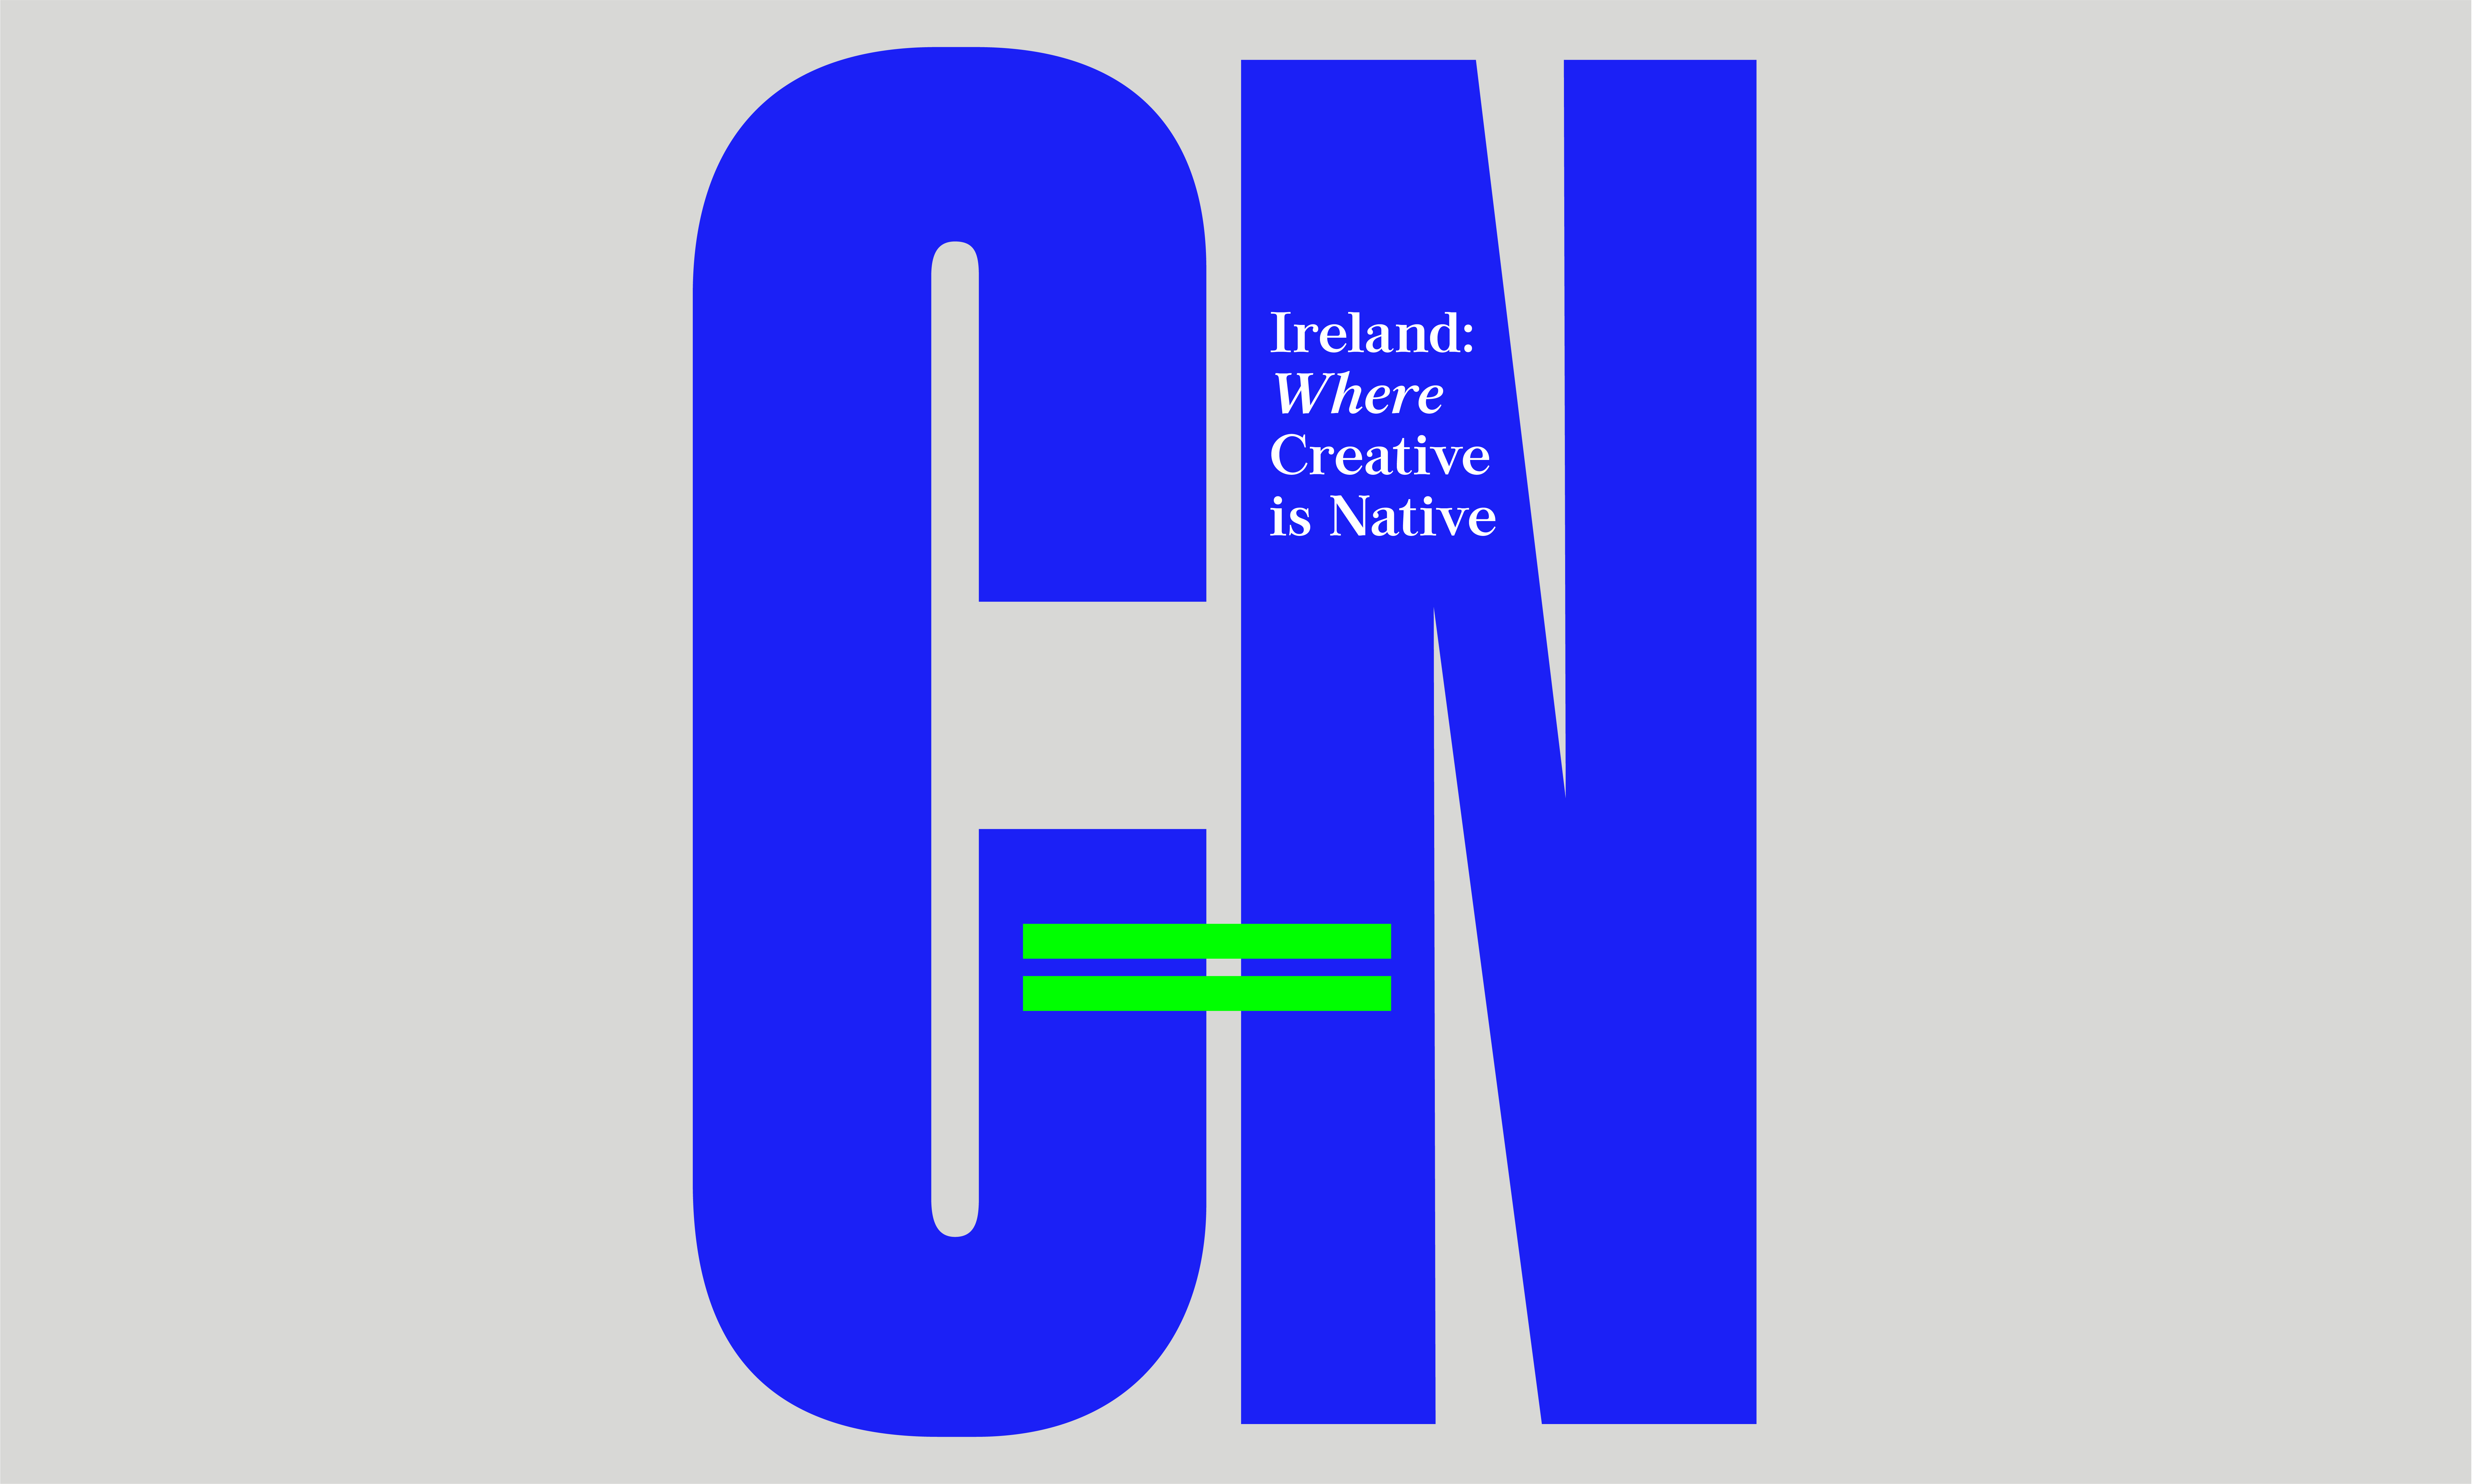 Cover image: Creative is Native (C=N)